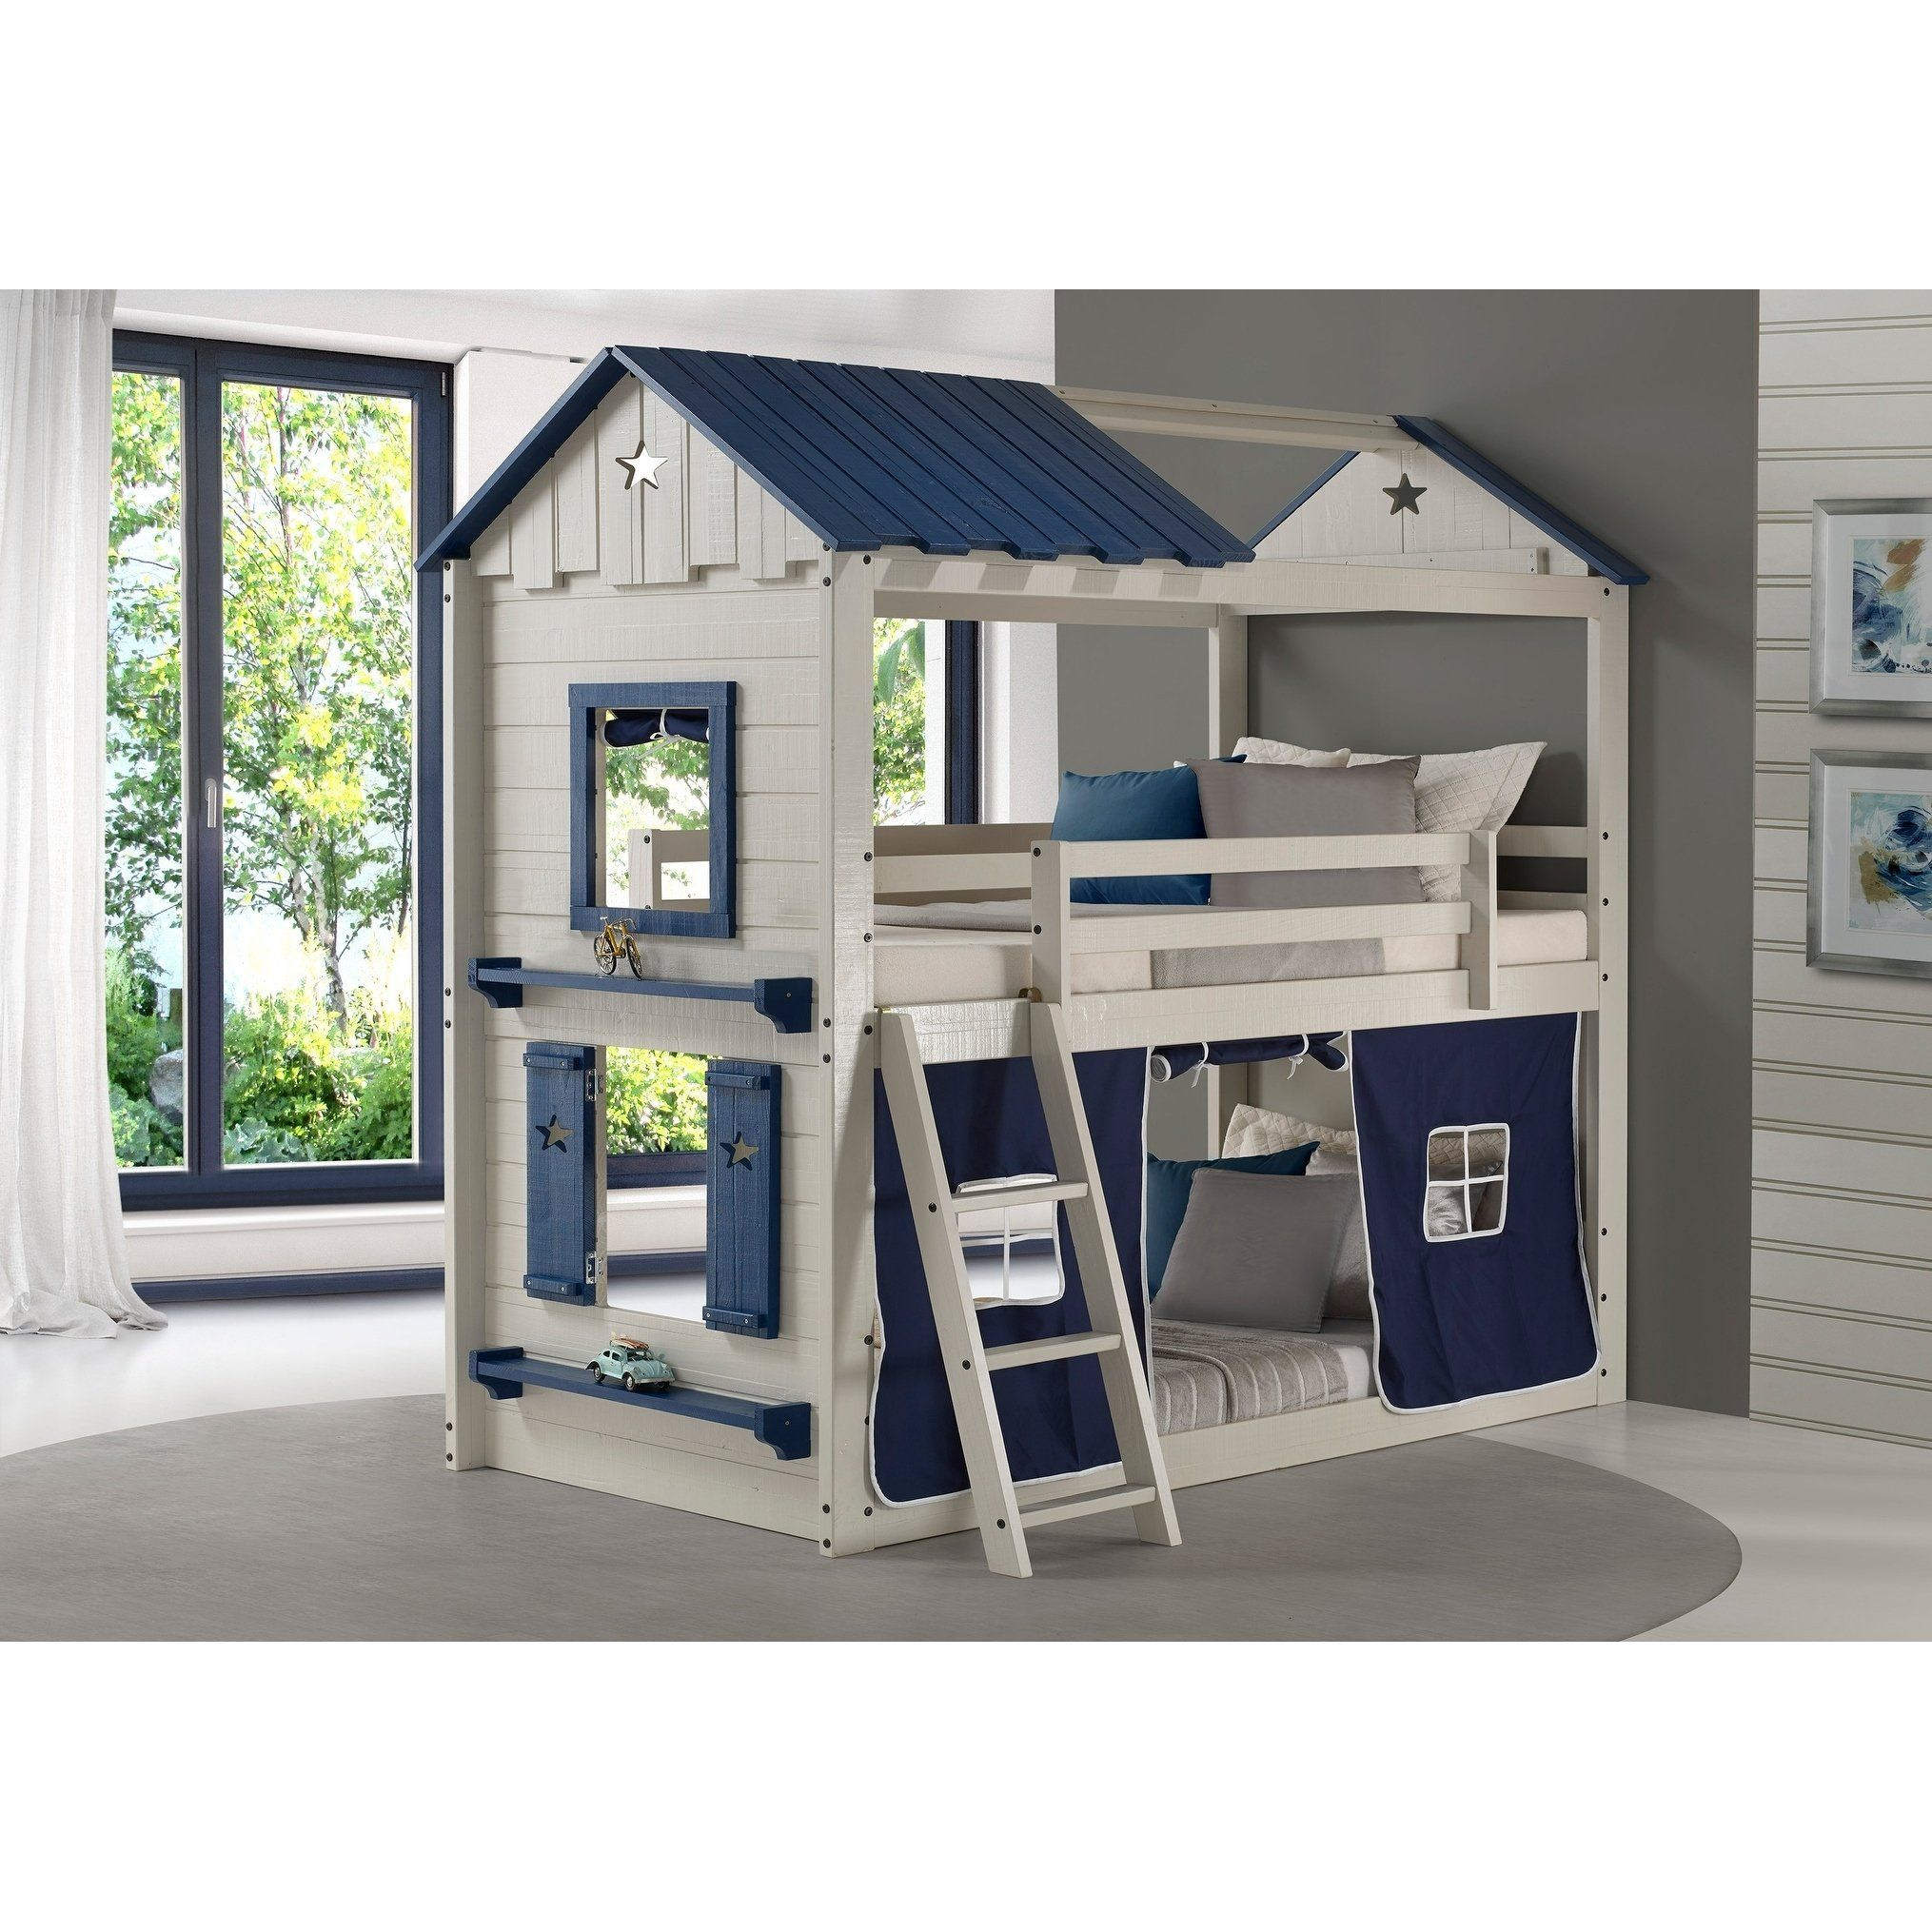 Twin over Twin Star Gaze Bunk Bed in Grey and Blue with